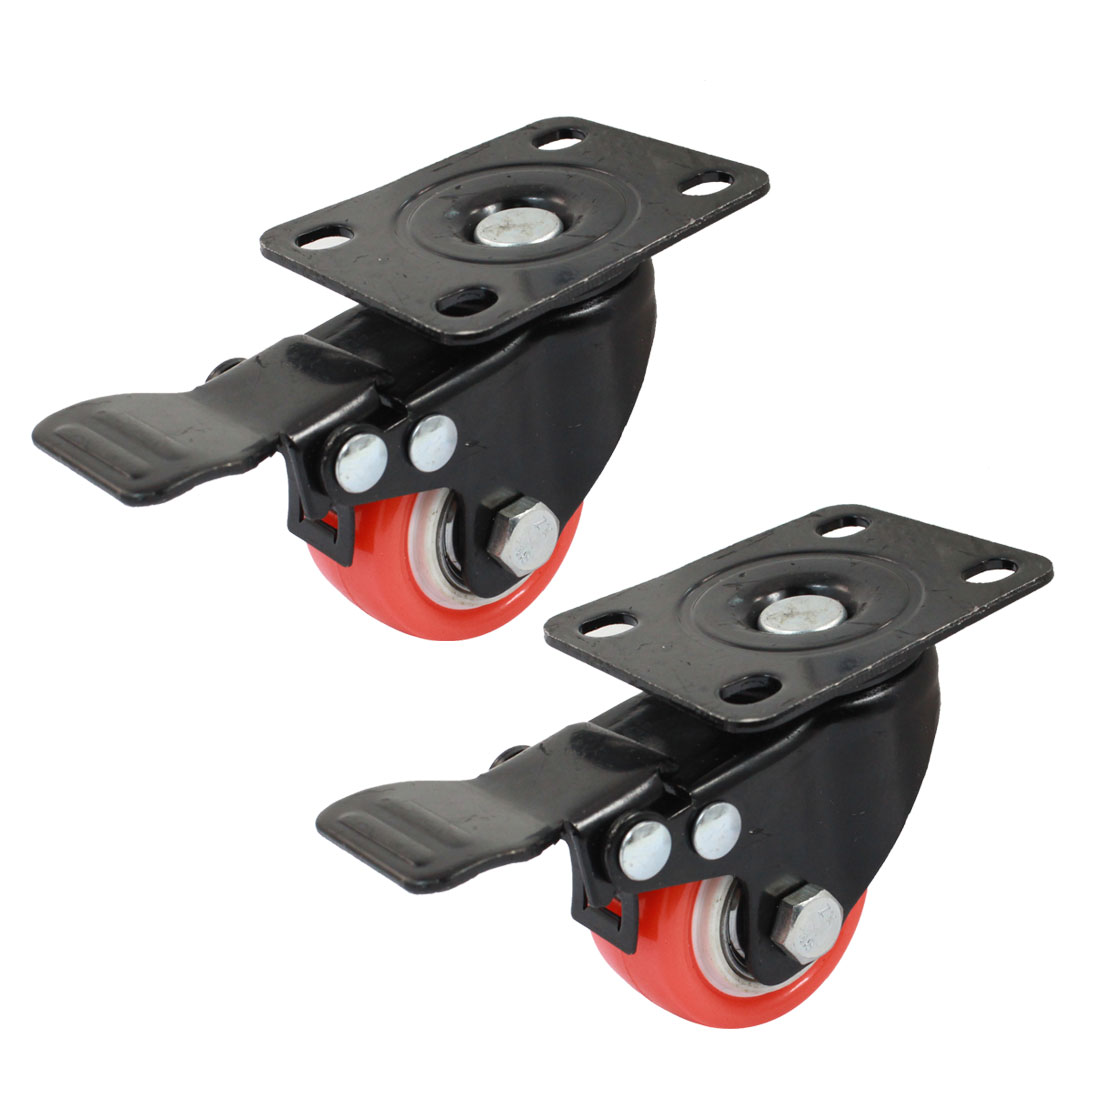 2pcs Furniture Trolley Black Orange Rotary Rectangle Plate Swivel Brake Caster